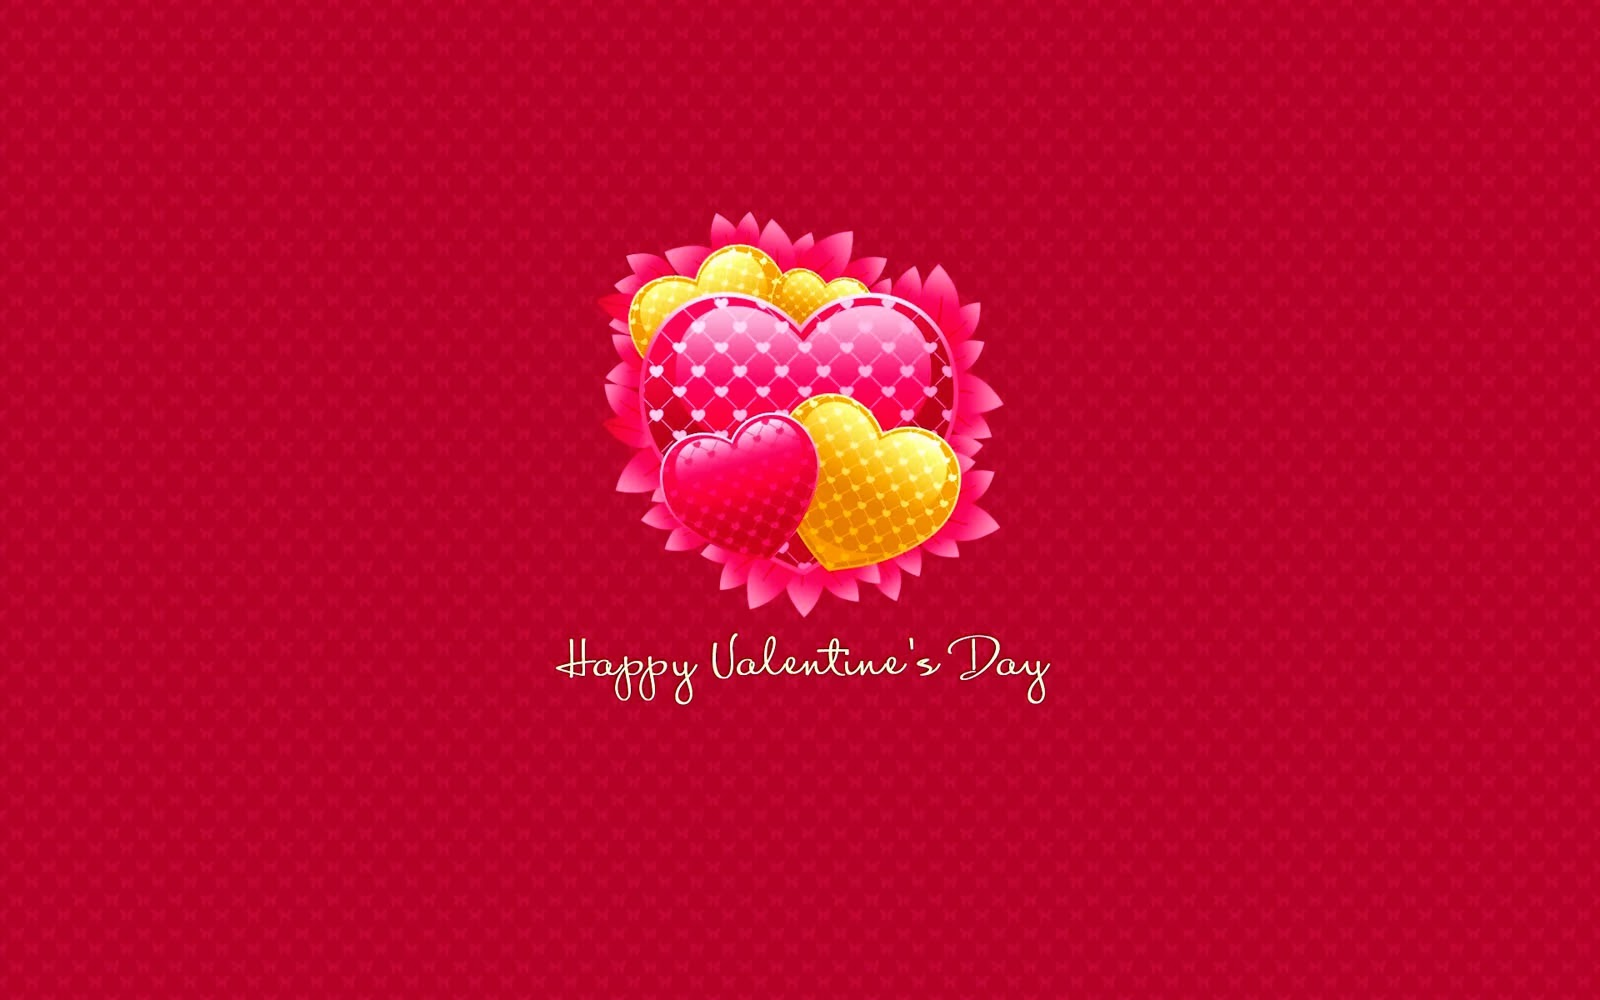 Cool valentines day wallpapers